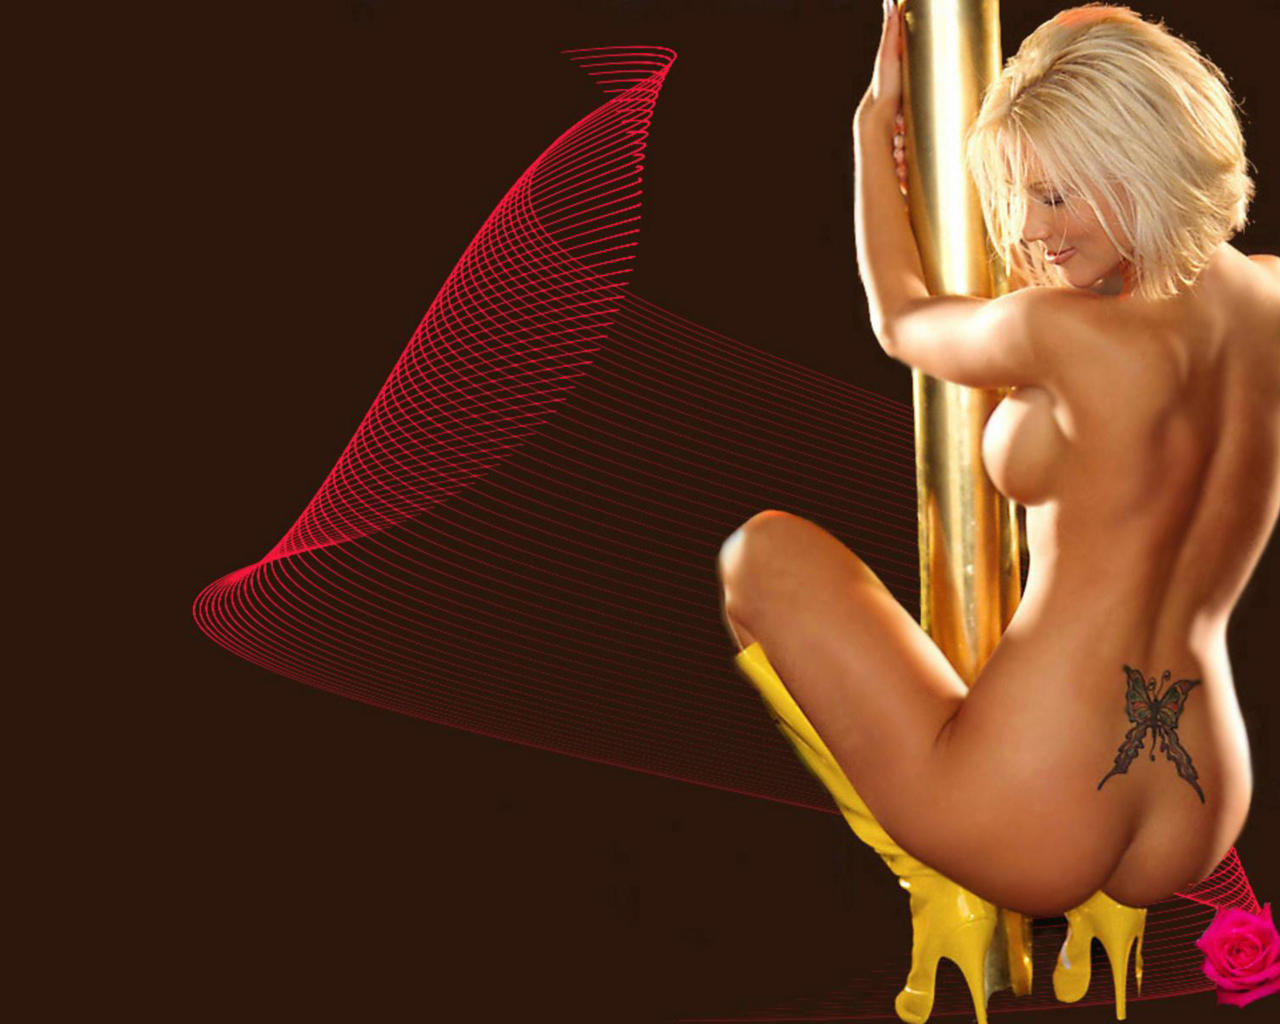 Nicki minaj is naked haveing sexs-3452